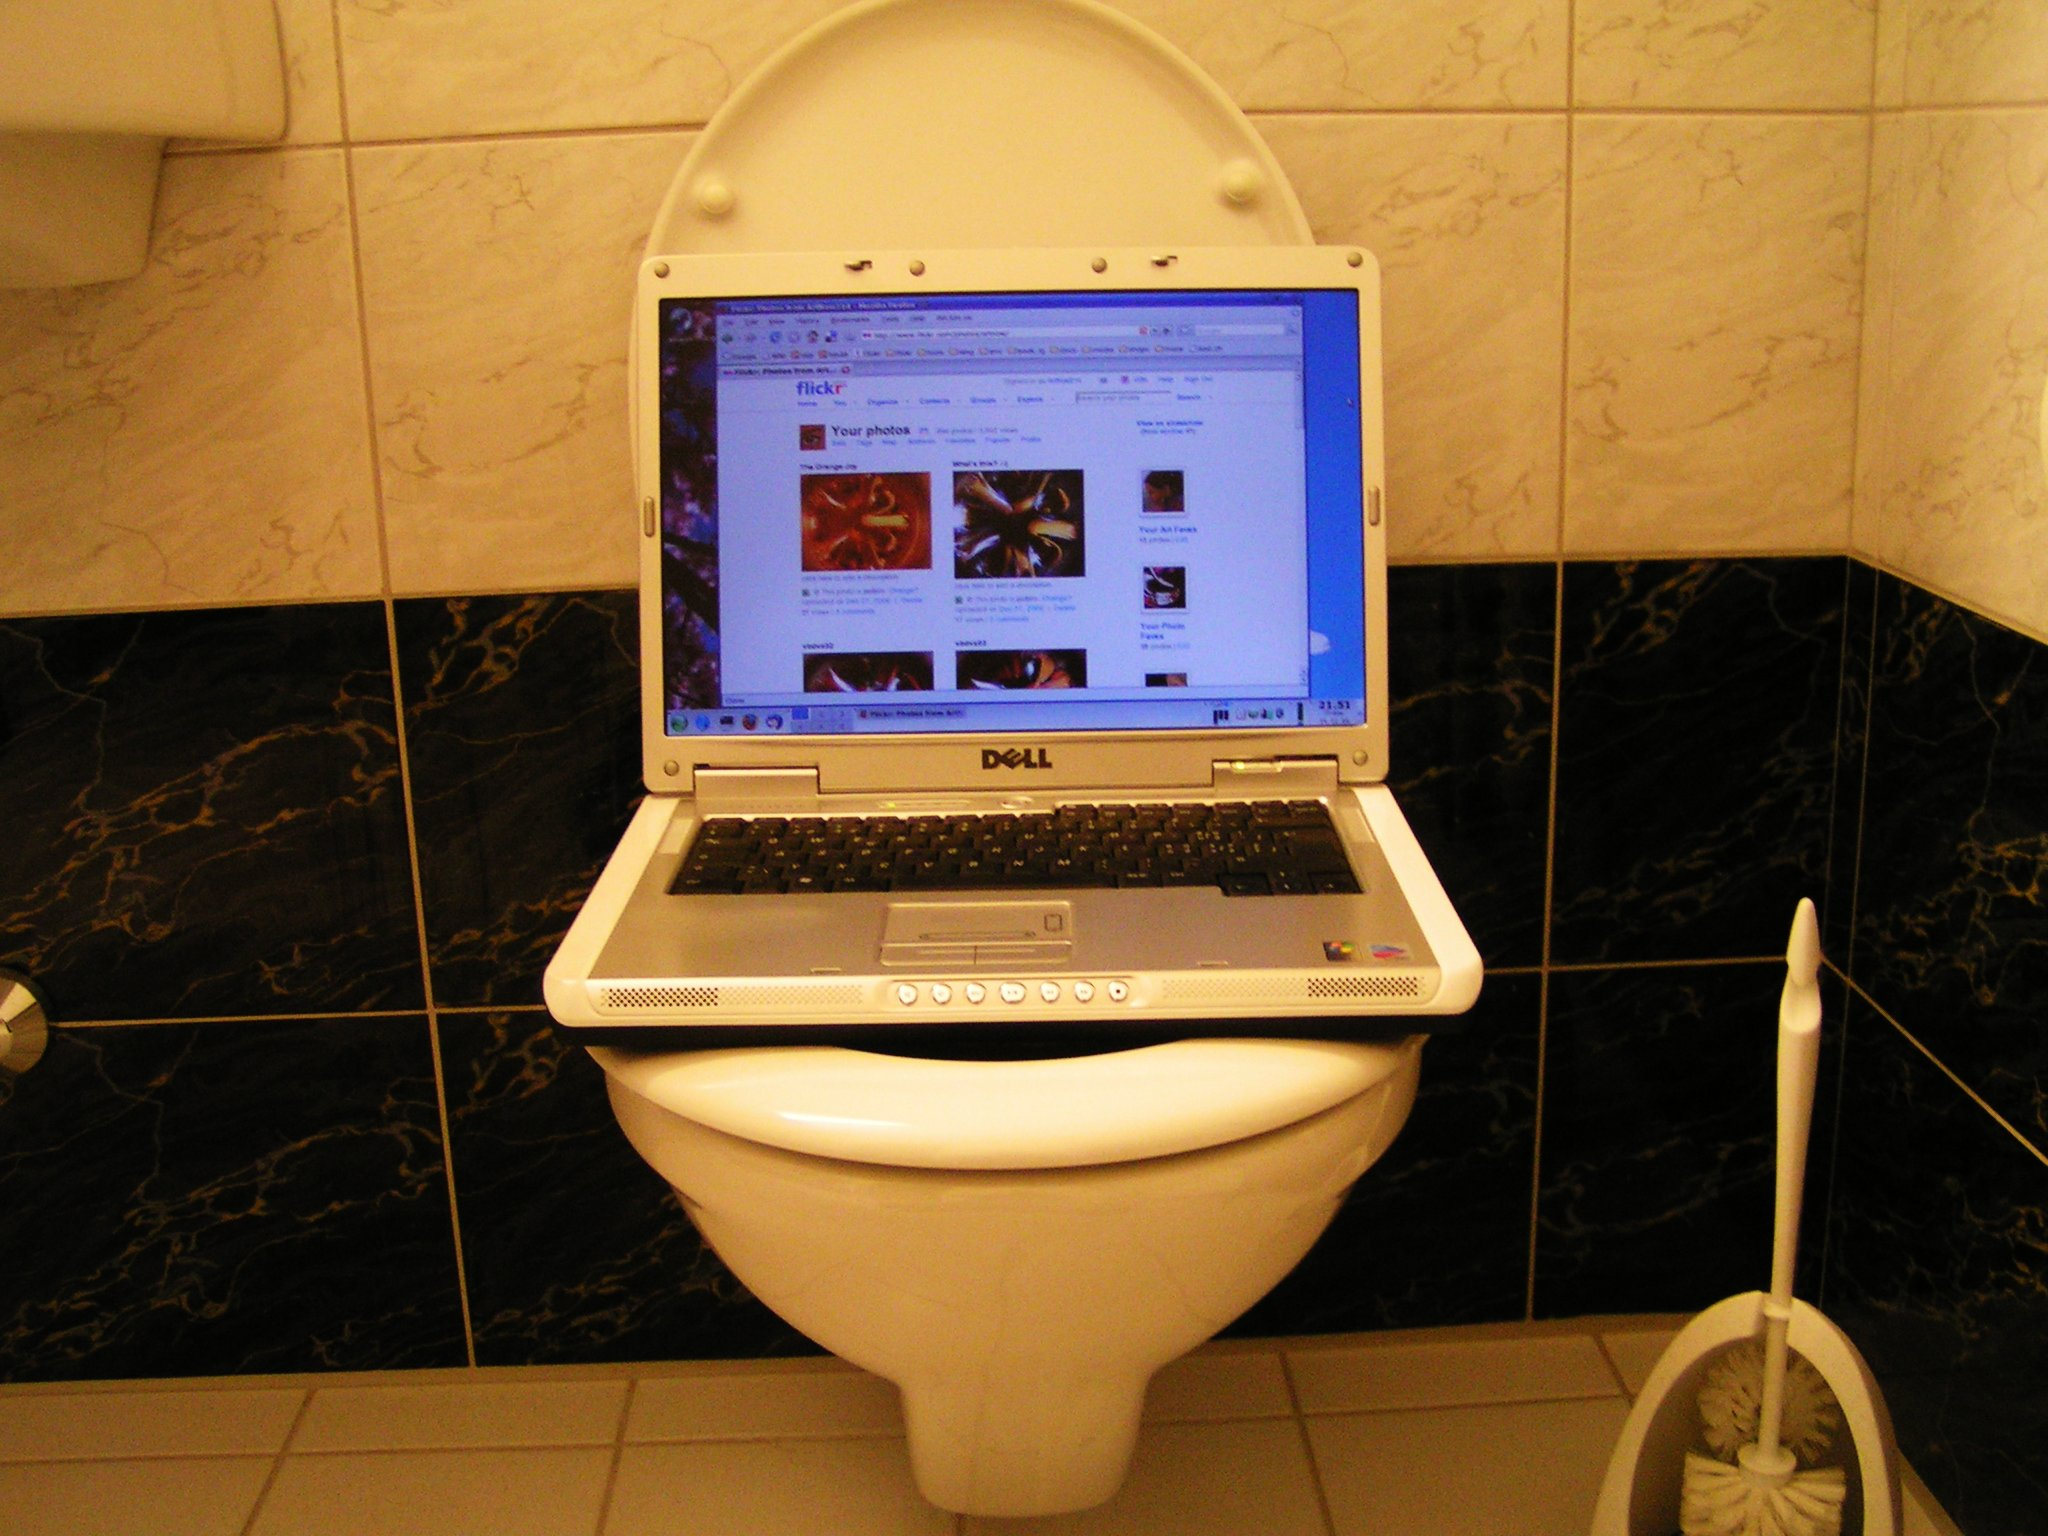 Laptop in the bathroom